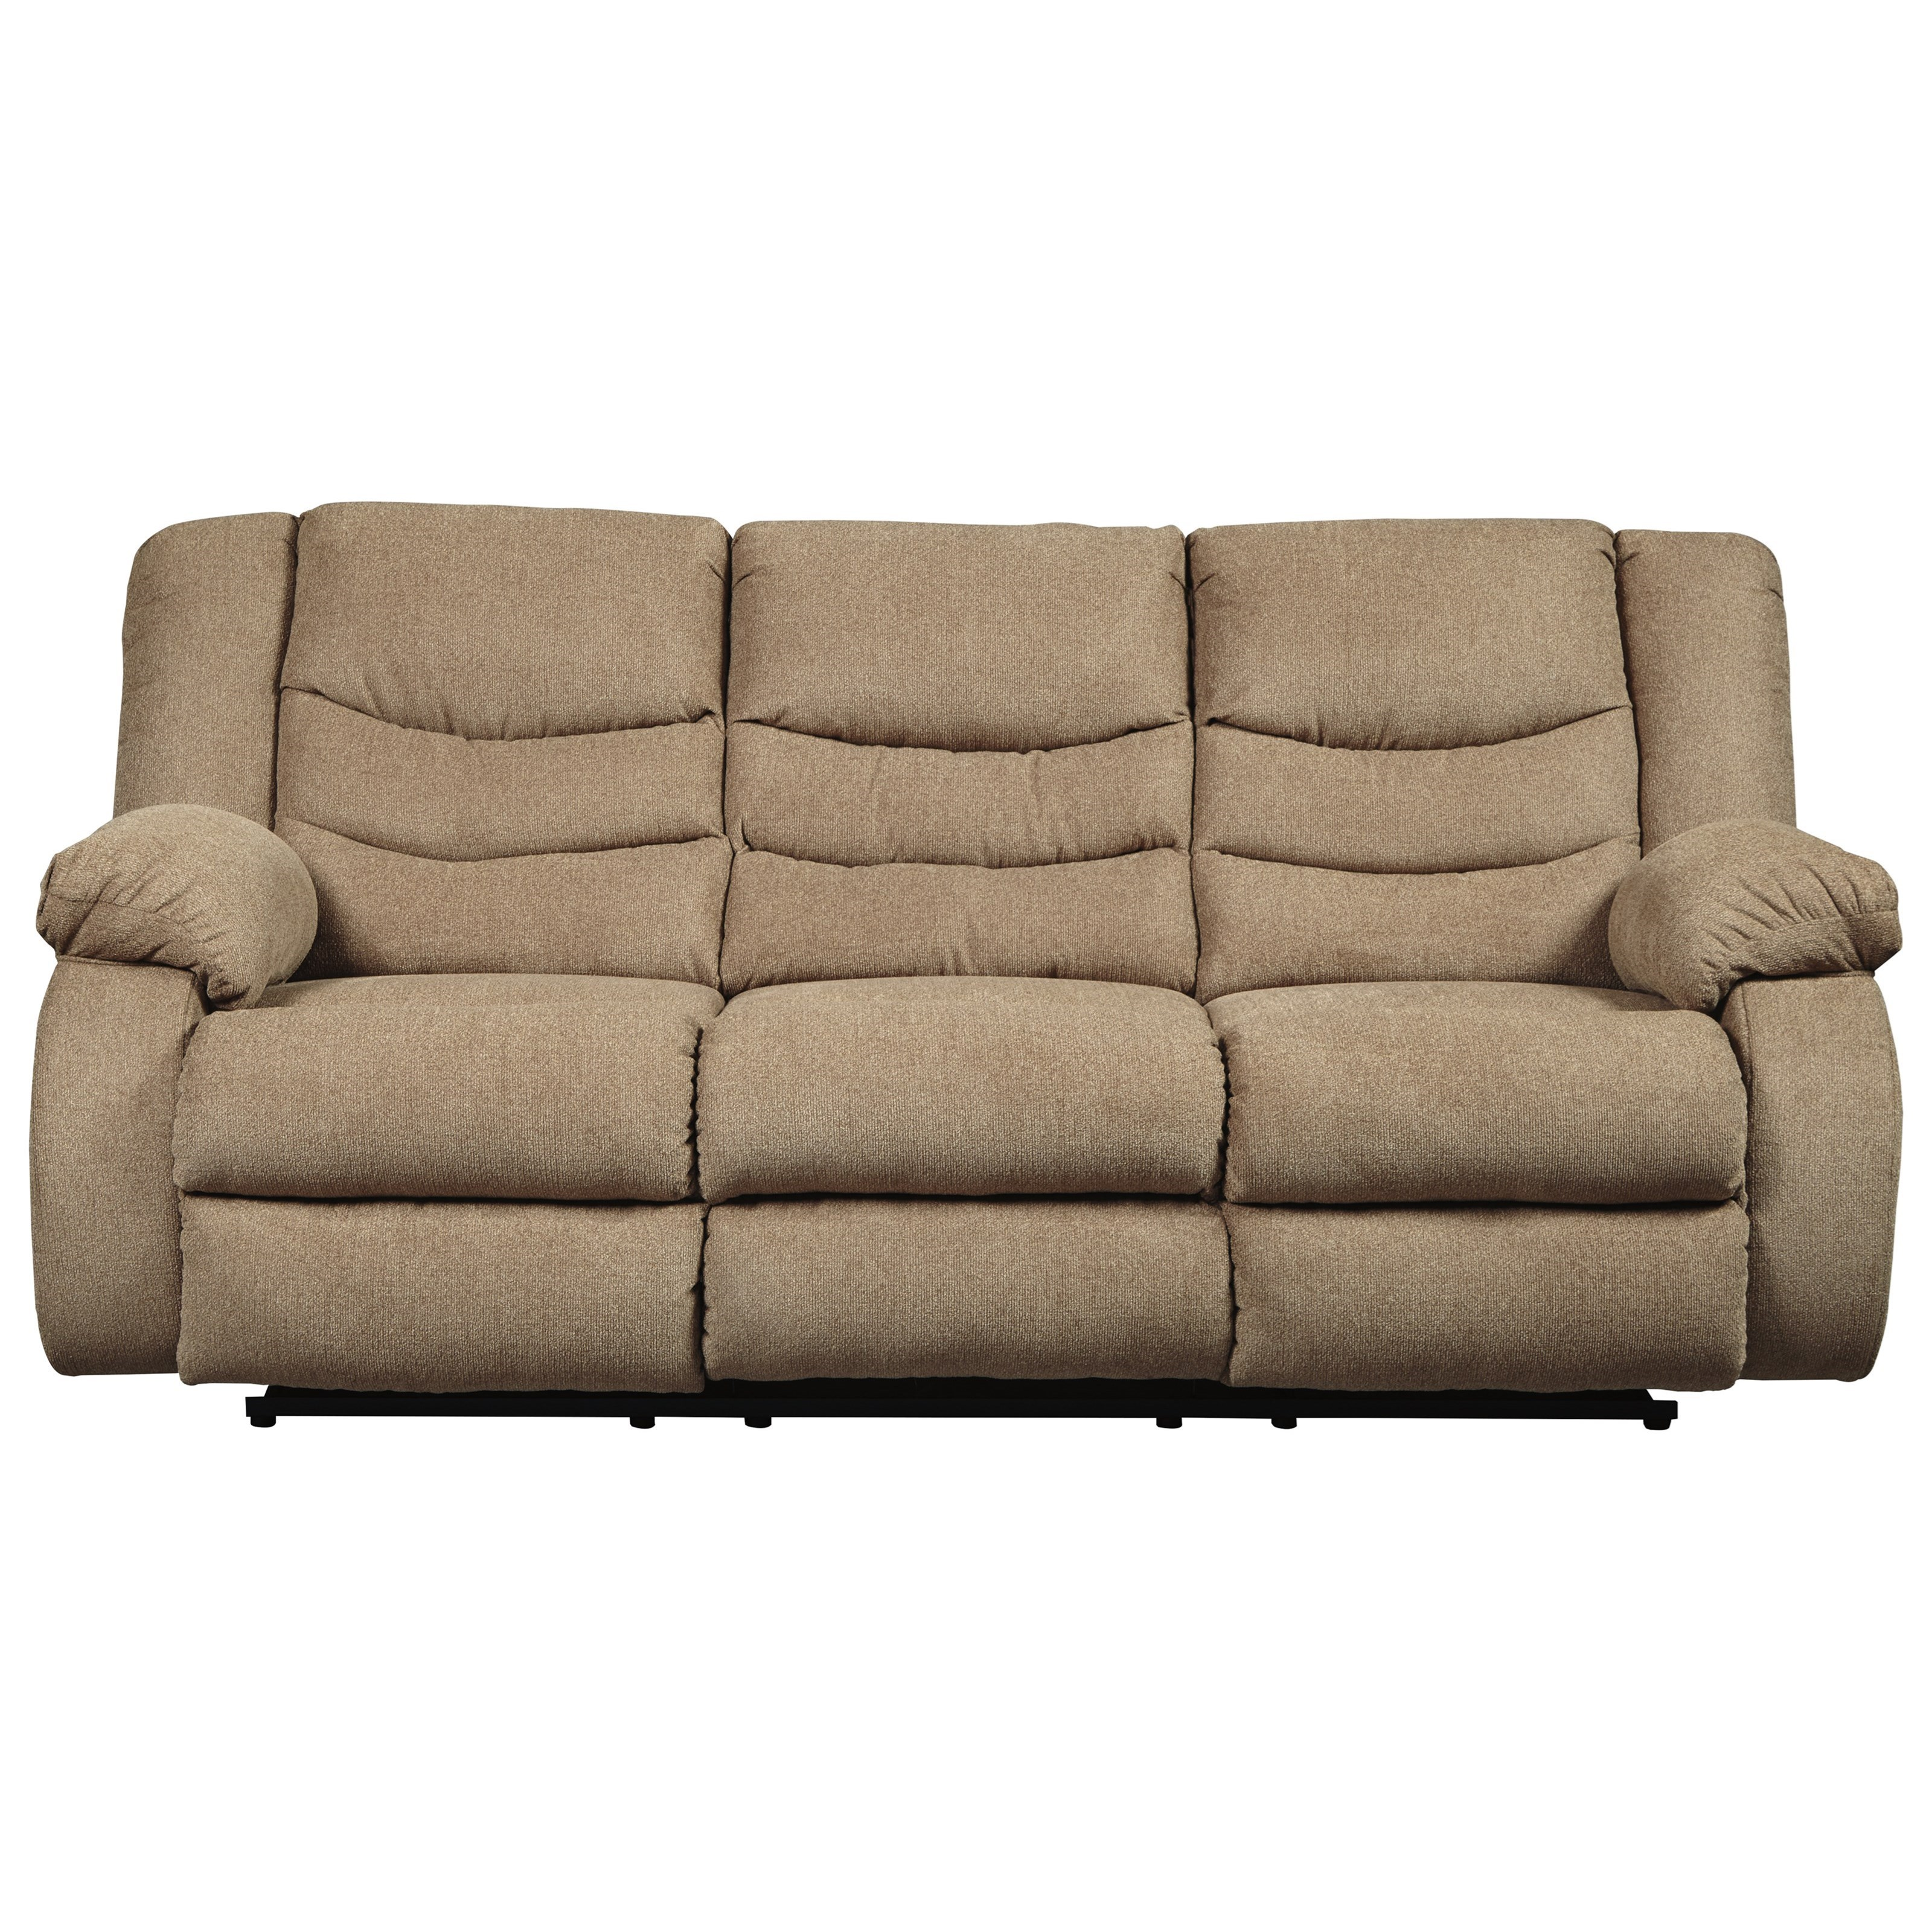 Tulen Reclining Sofa by Signature Design by Ashley at Household Furniture